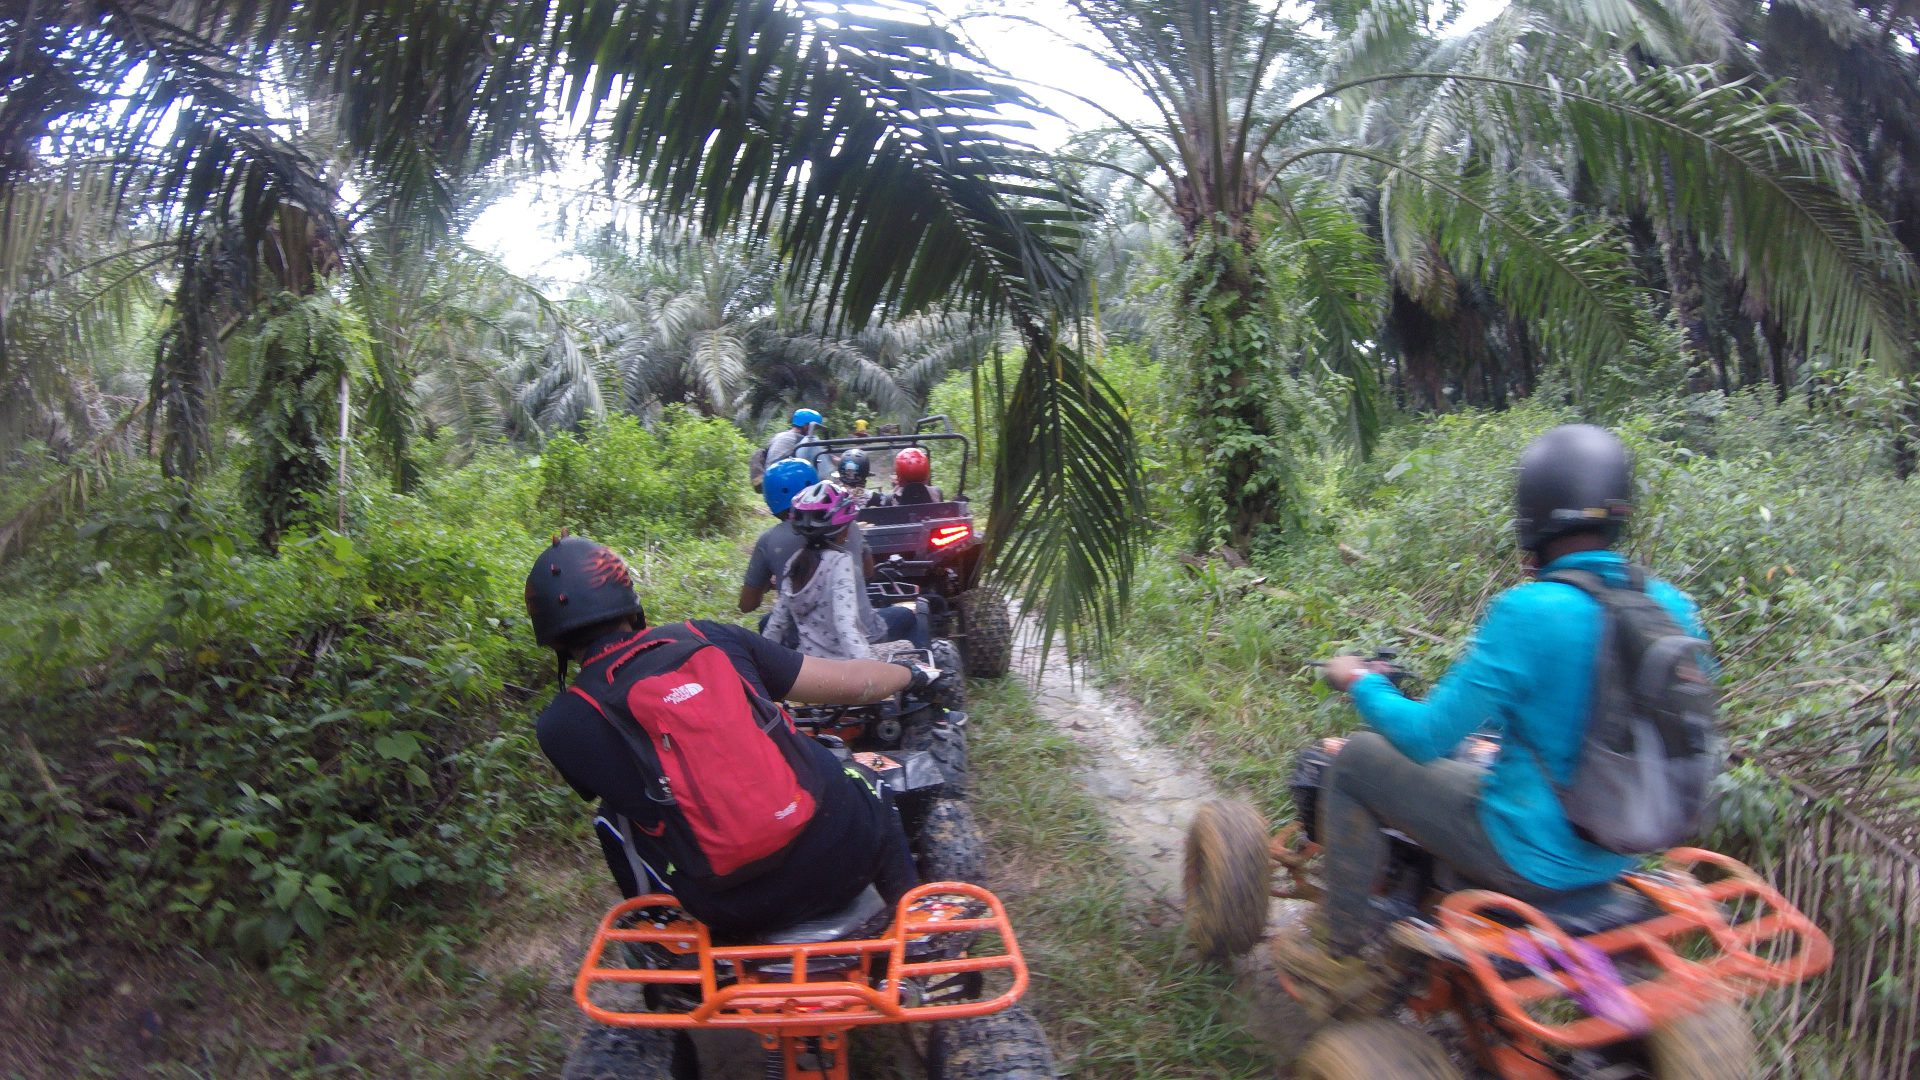 ATV Kg. Jkin Extreme Park #photo #video